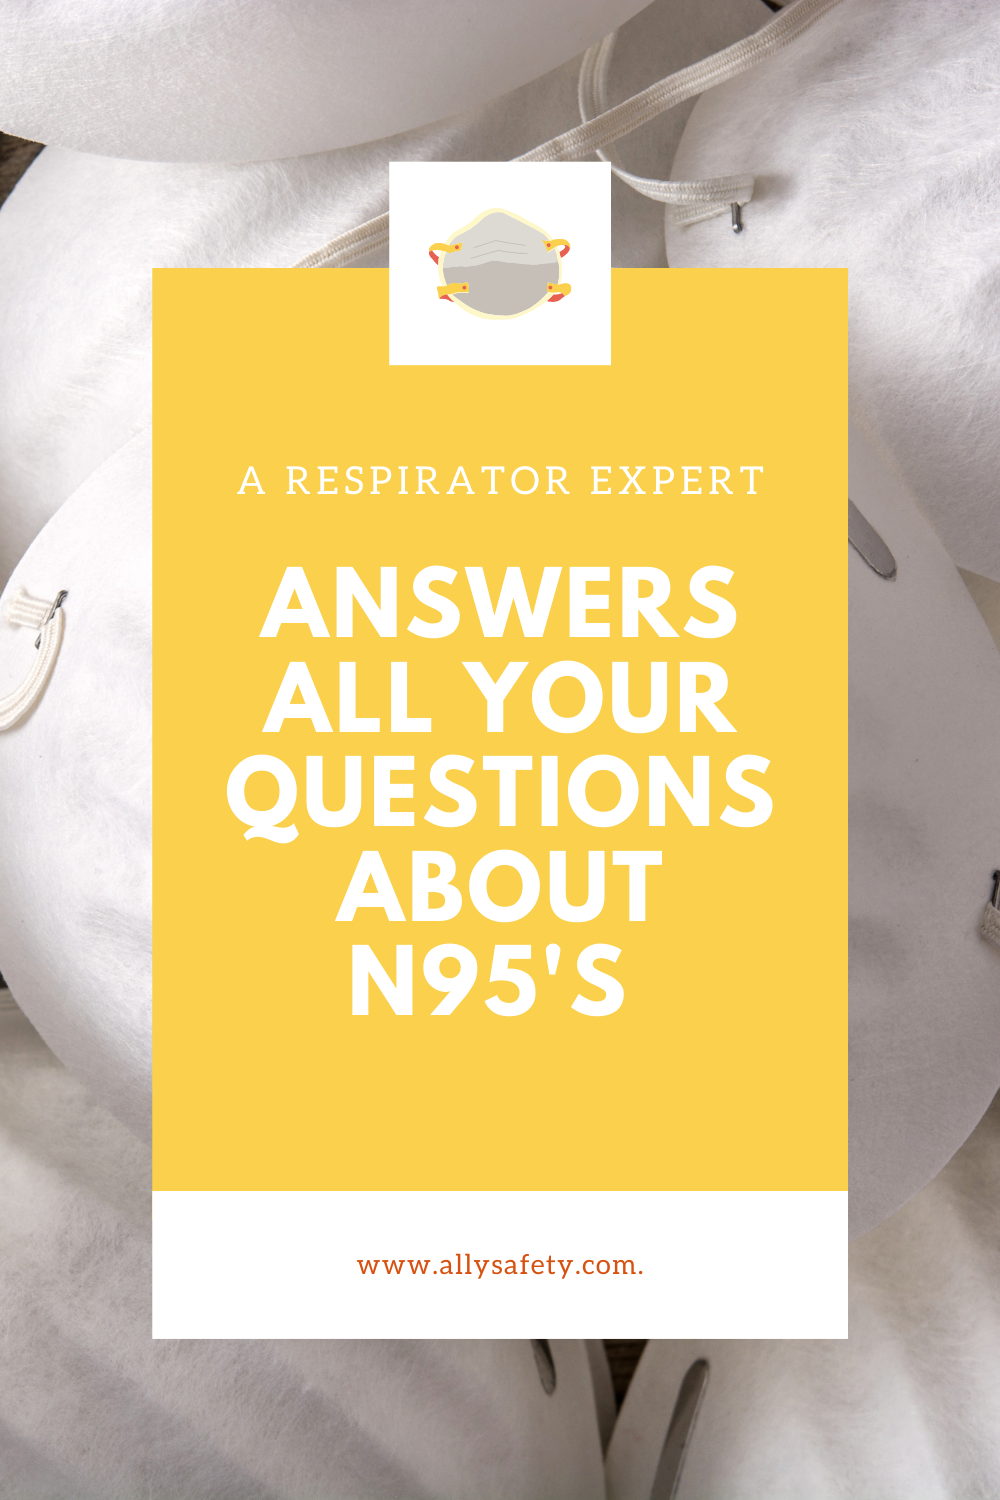 All your questions about n95's answered